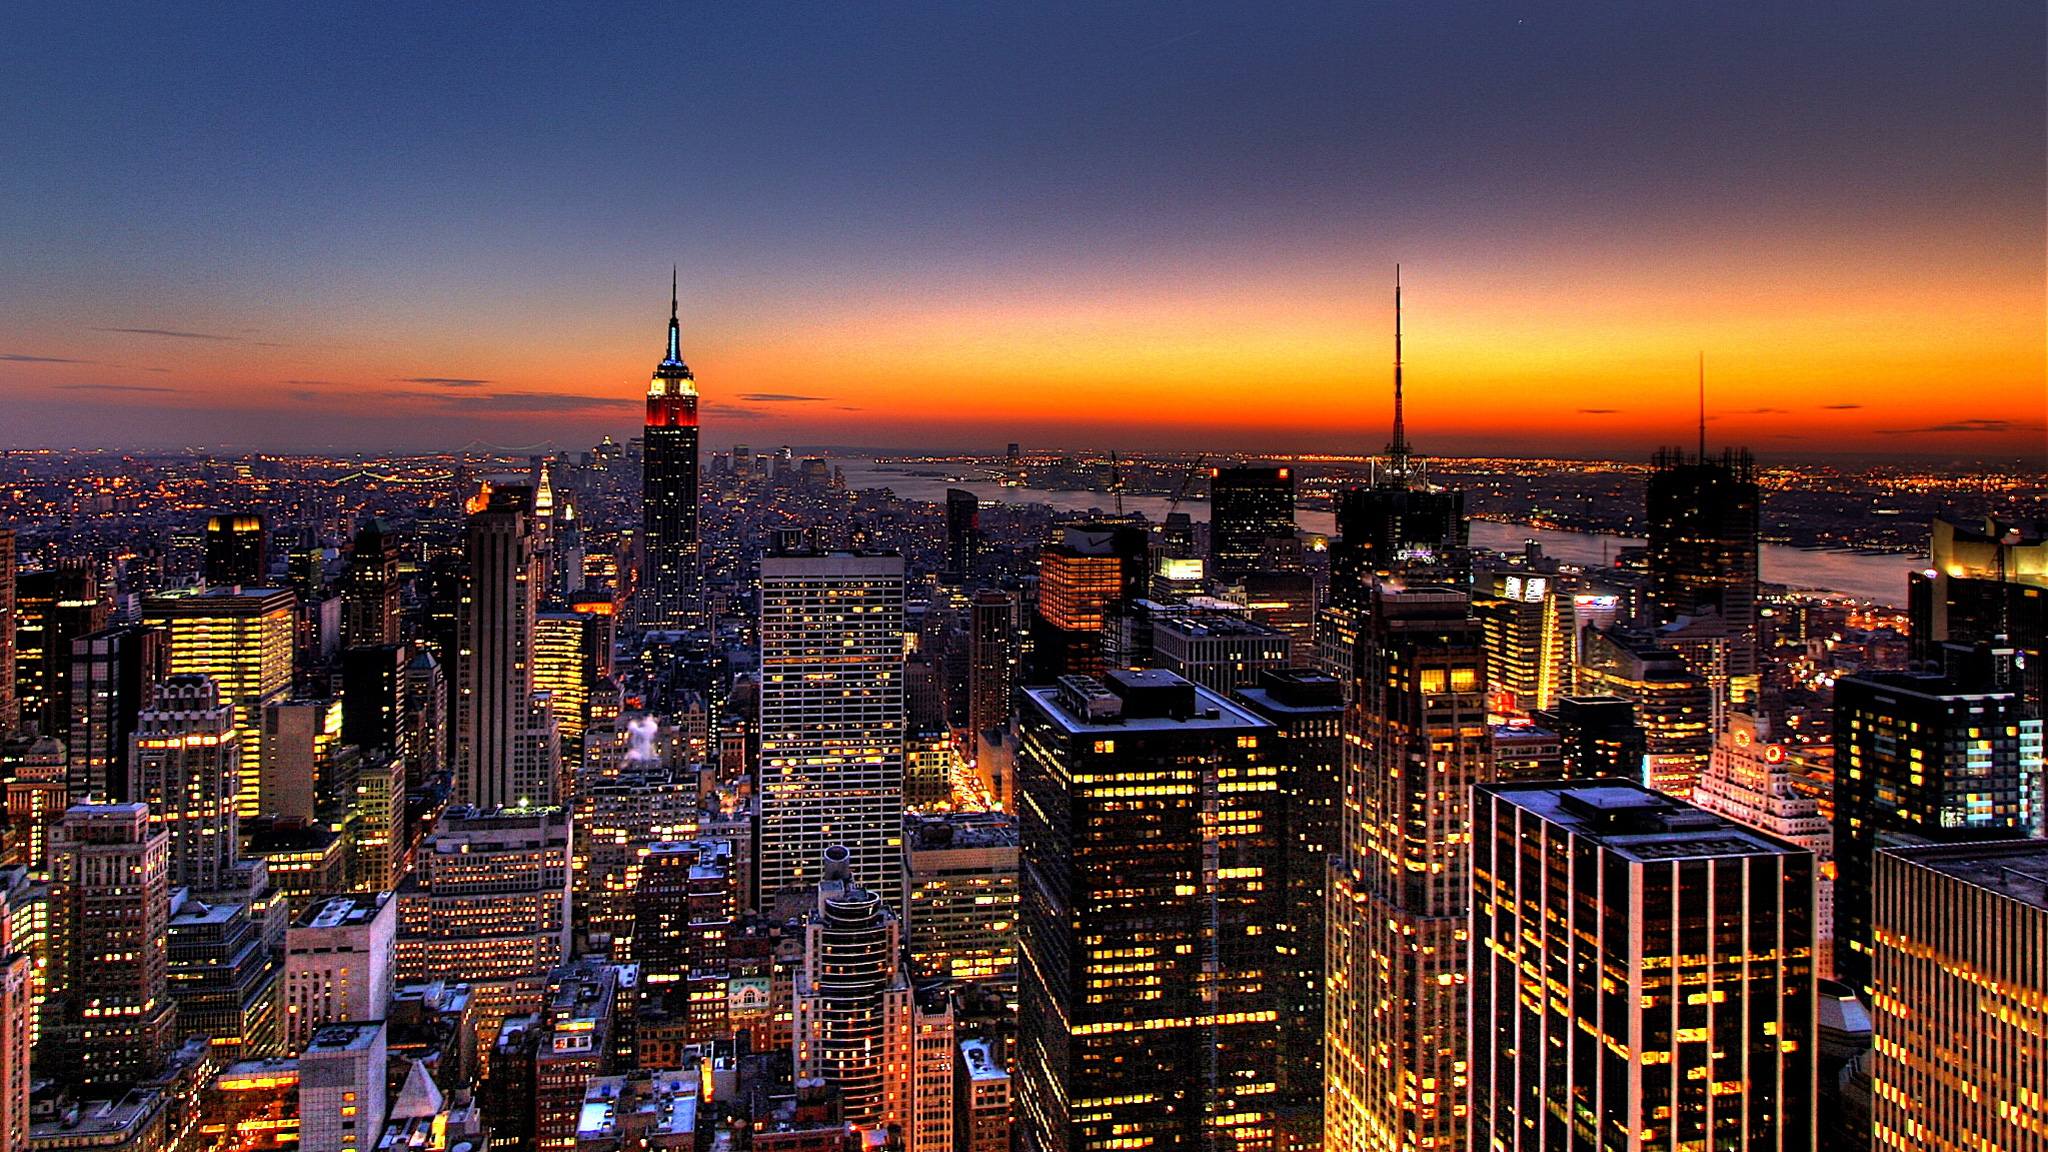 Wallpapers Full Hd 1080p New York And Company Wallpaper